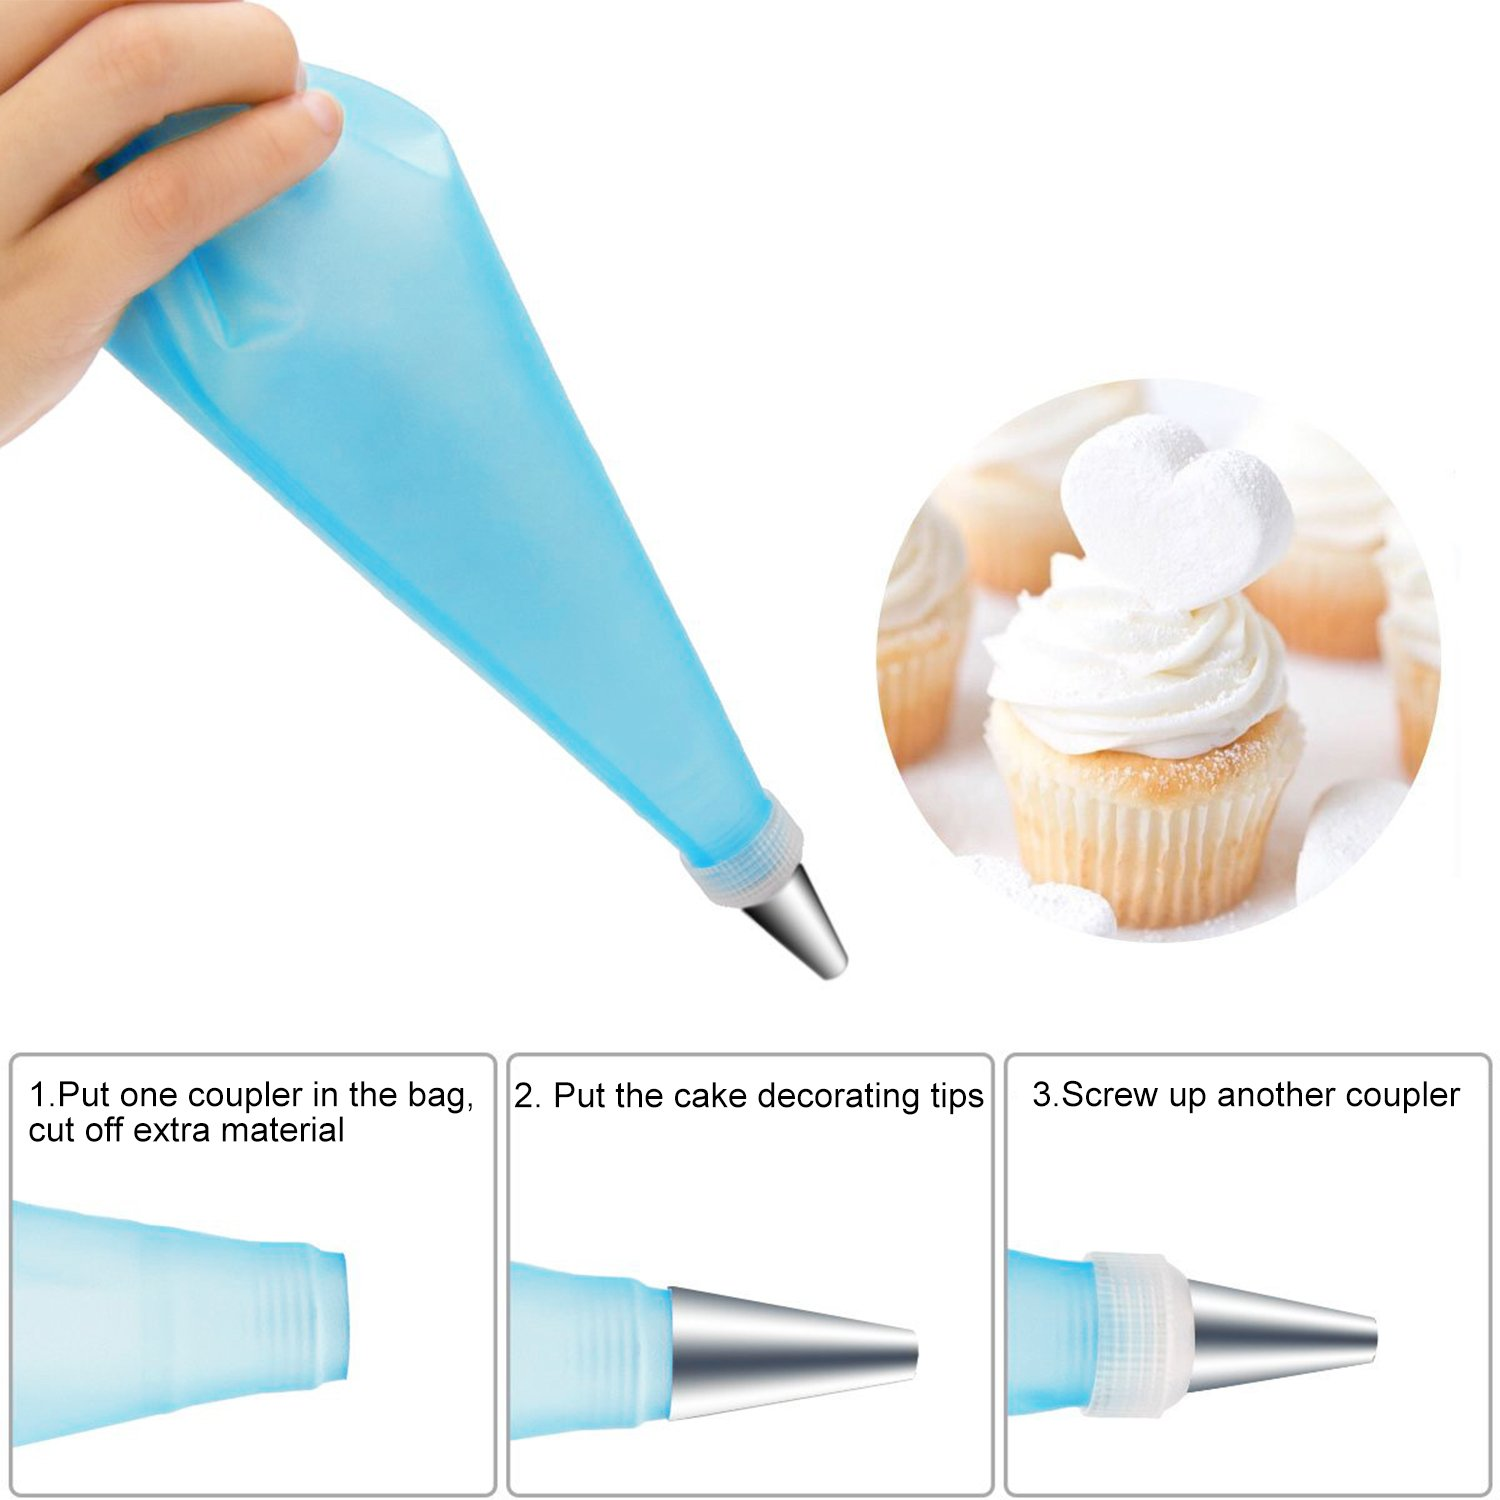 All in One Plastic Storage Case Silver 2 Plastic Couplers,1 Reusable Silicone Pastry Bag HOOMIL 28 Pieces Cake Decorating Supplies Kit with 24 Stainless Steel DIY Icing Tip Set Tools